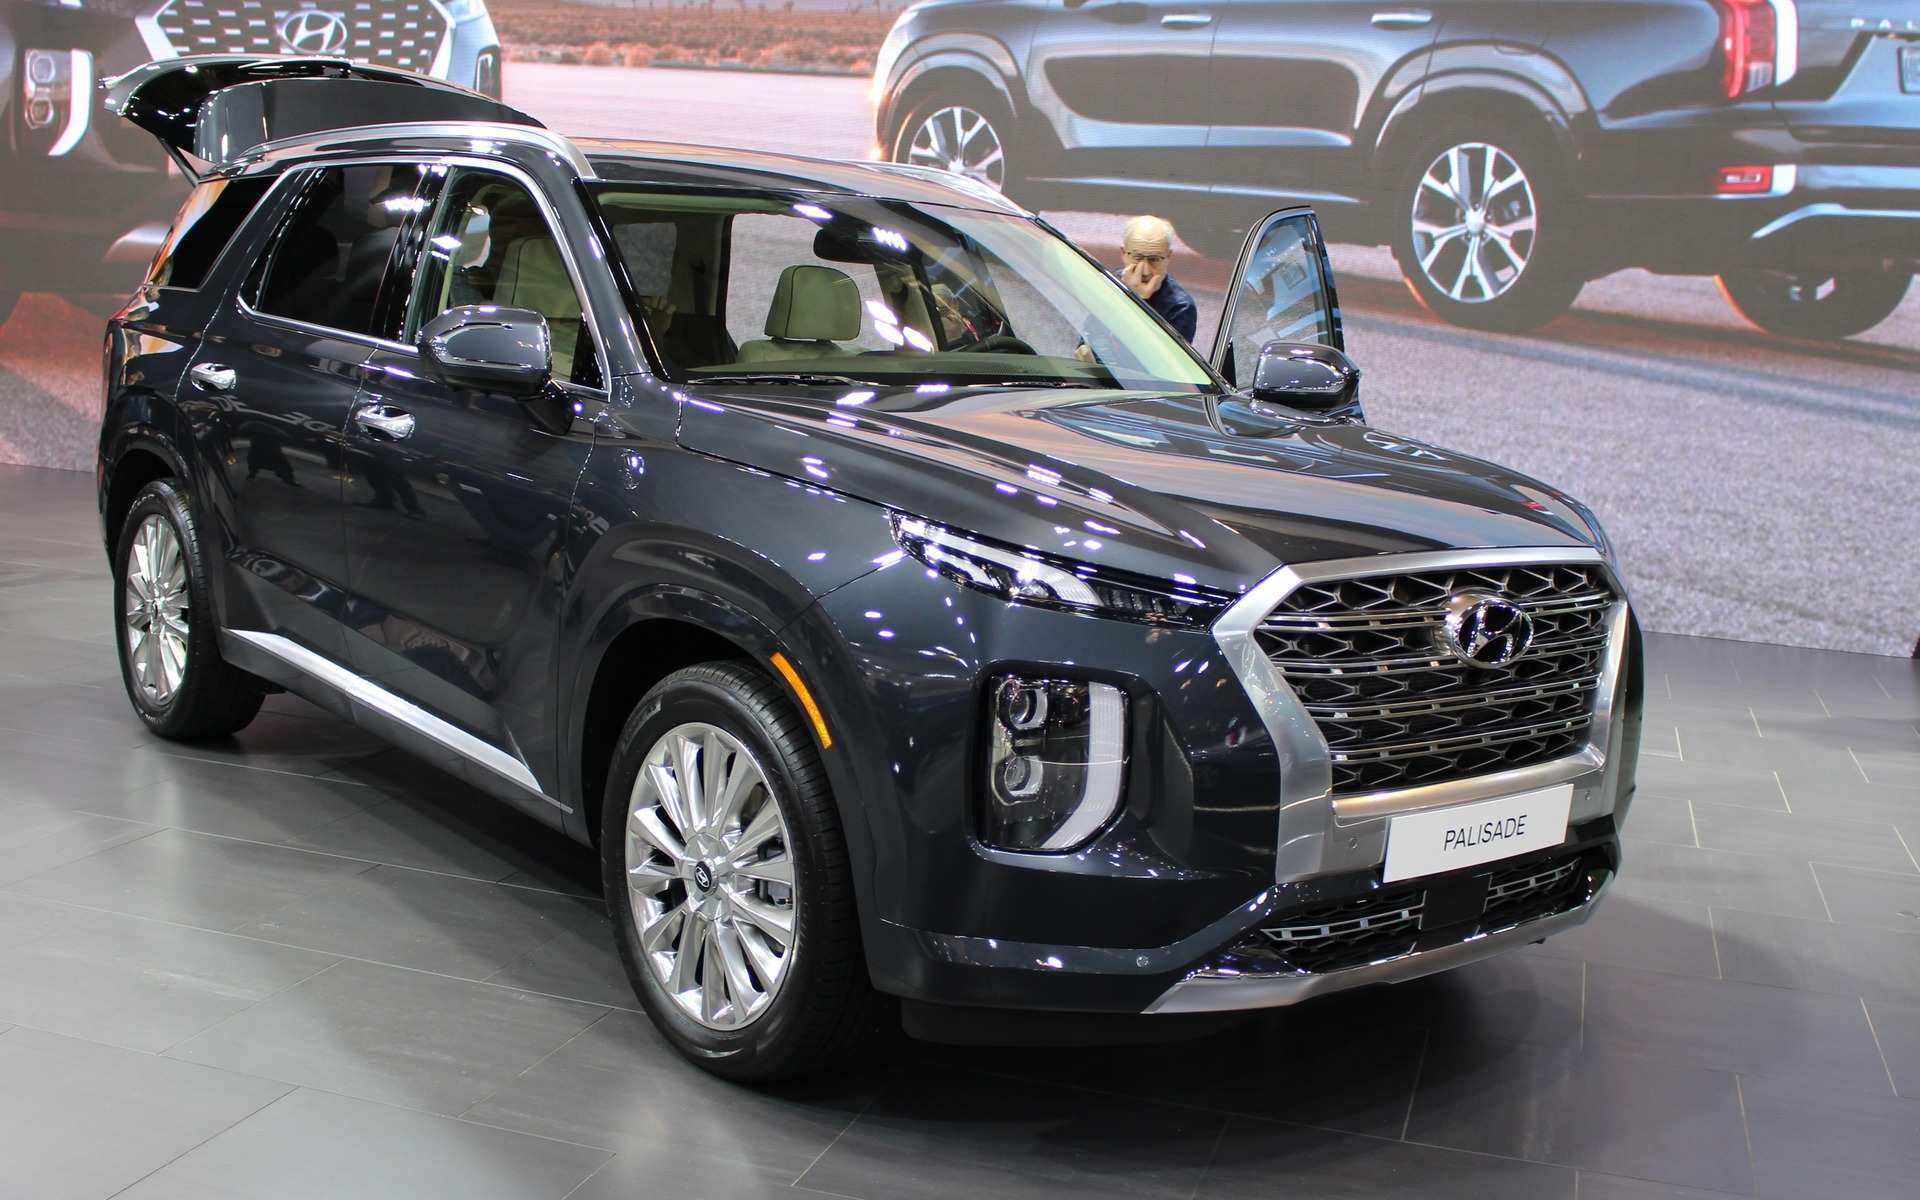 67 Great When Will The 2020 Hyundai Palisade Be Available Research New for When Will The 2020 Hyundai Palisade Be Available